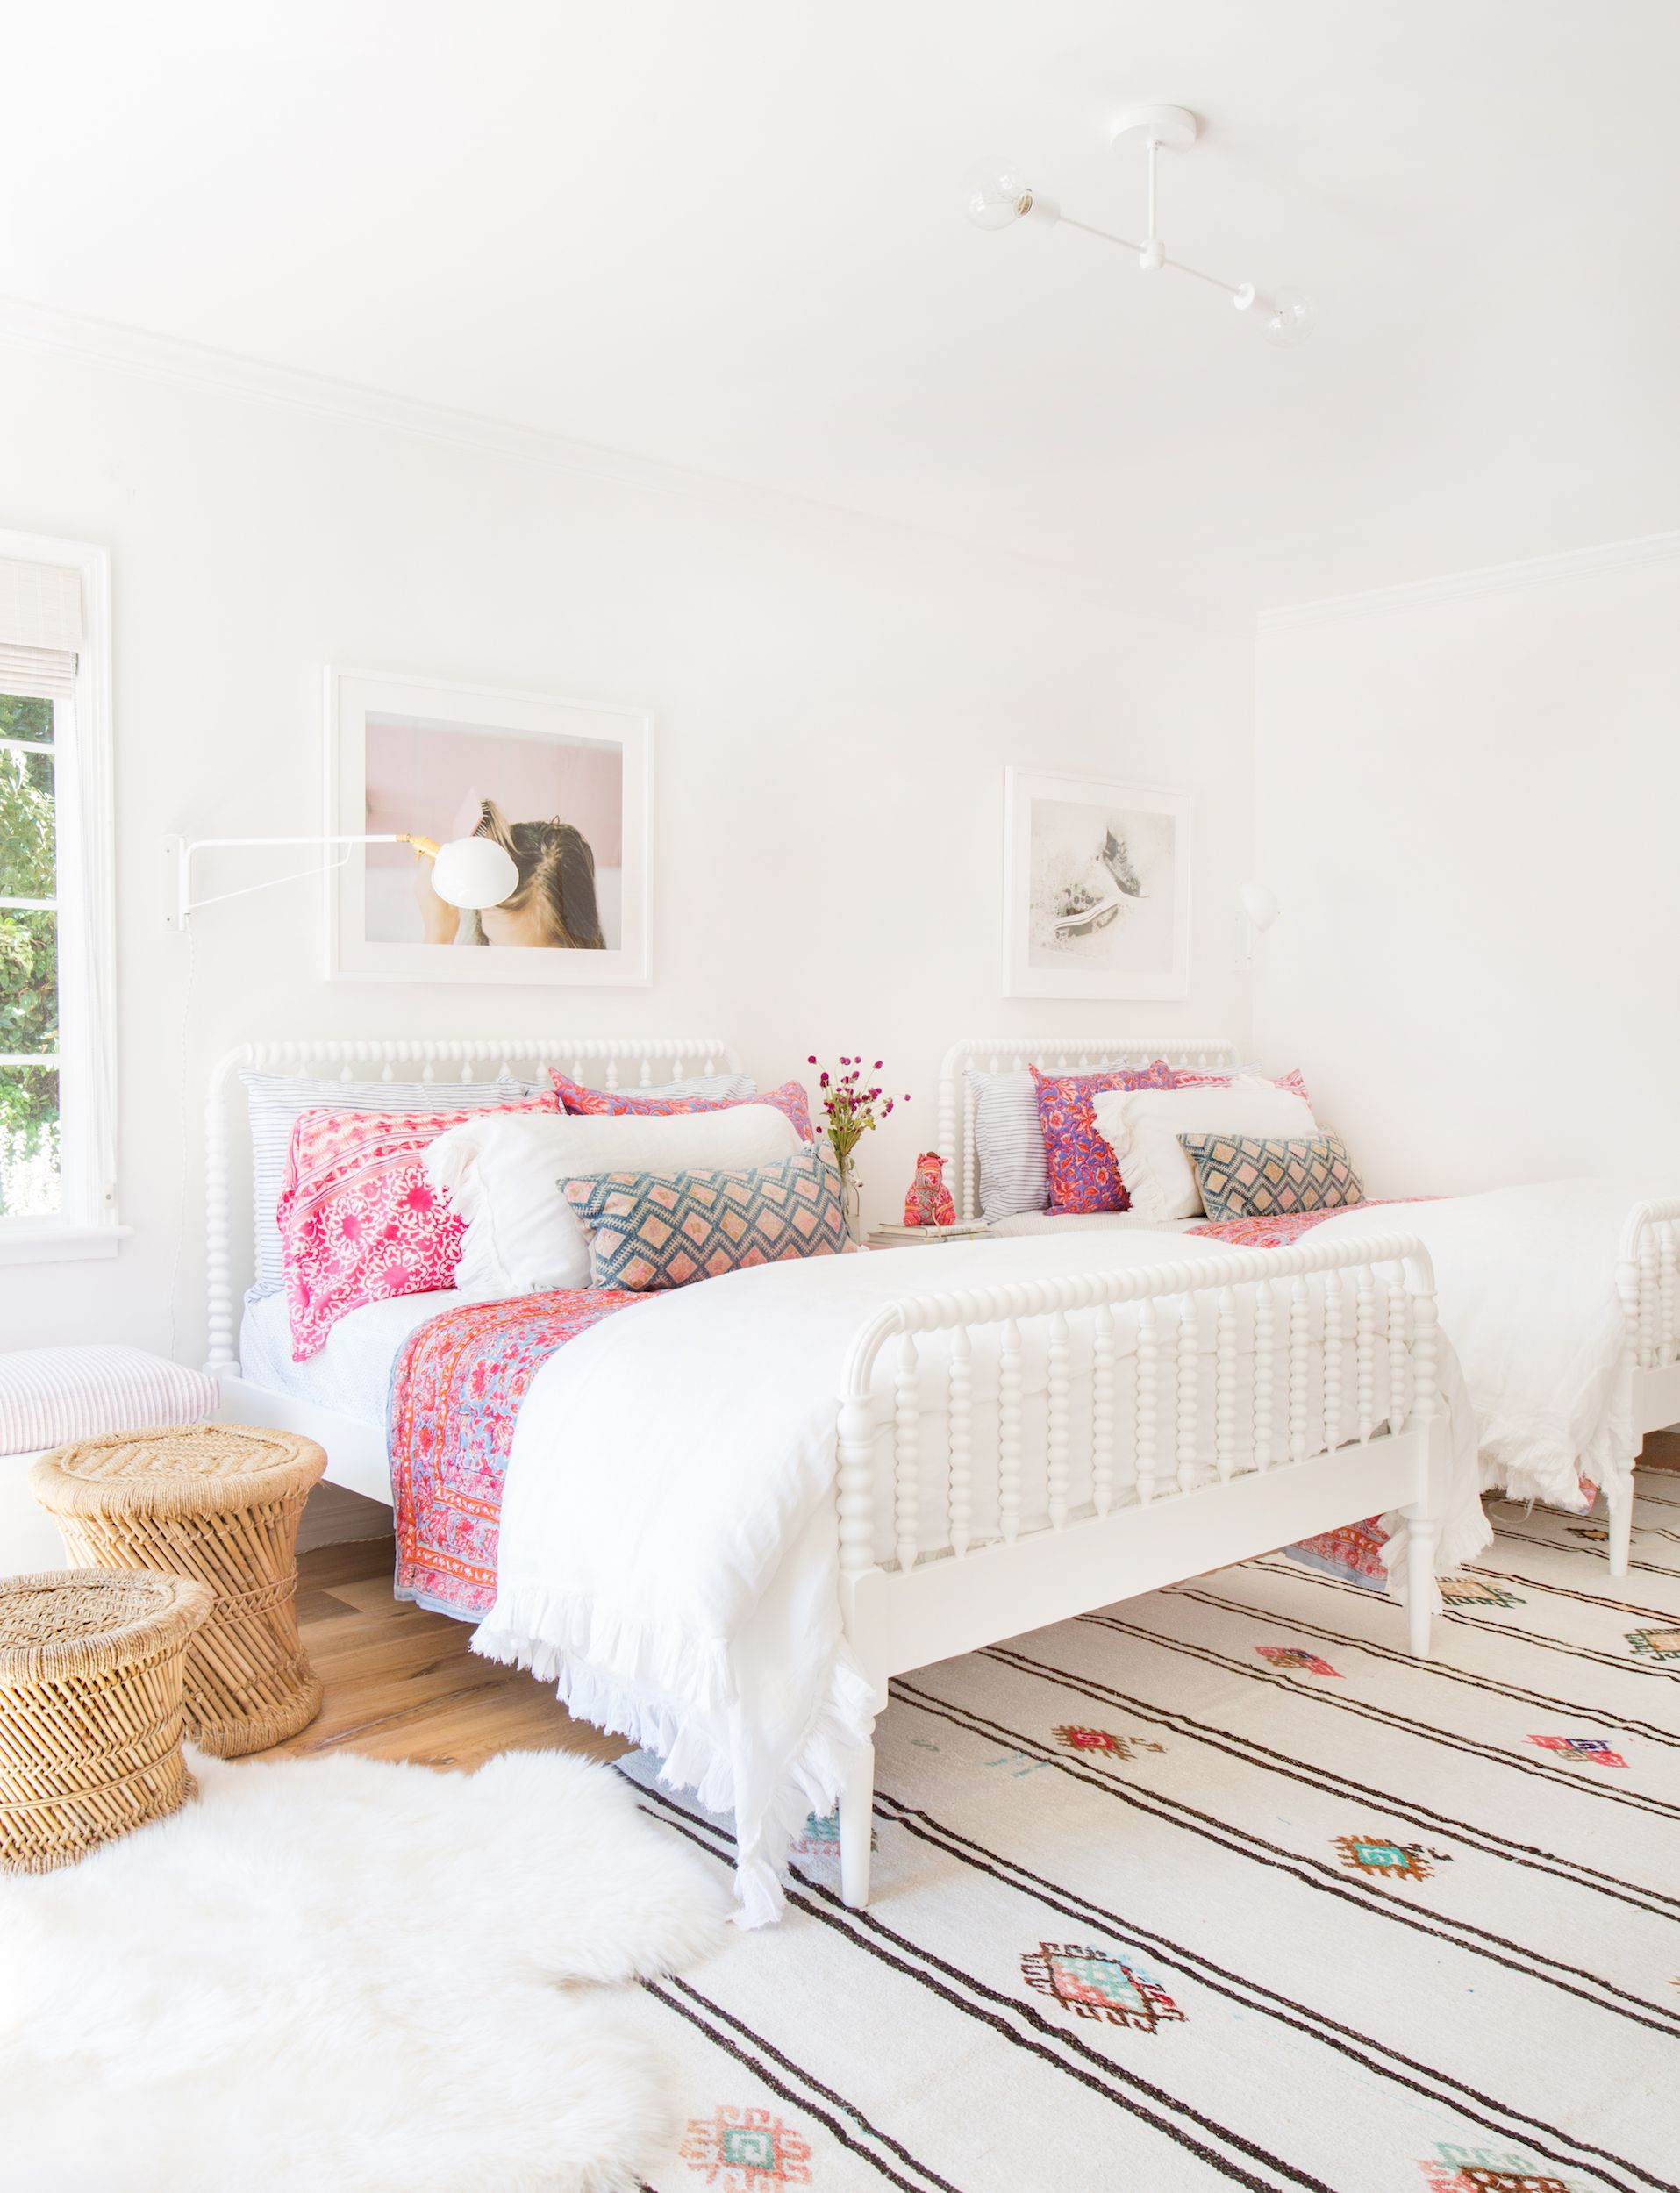 11 Teen Bedroom Ideas You And Your Kids Will Both Love & 11 Best Teen Bedroom Ideas - Cool Teenage Room Decor for Girls and Boys